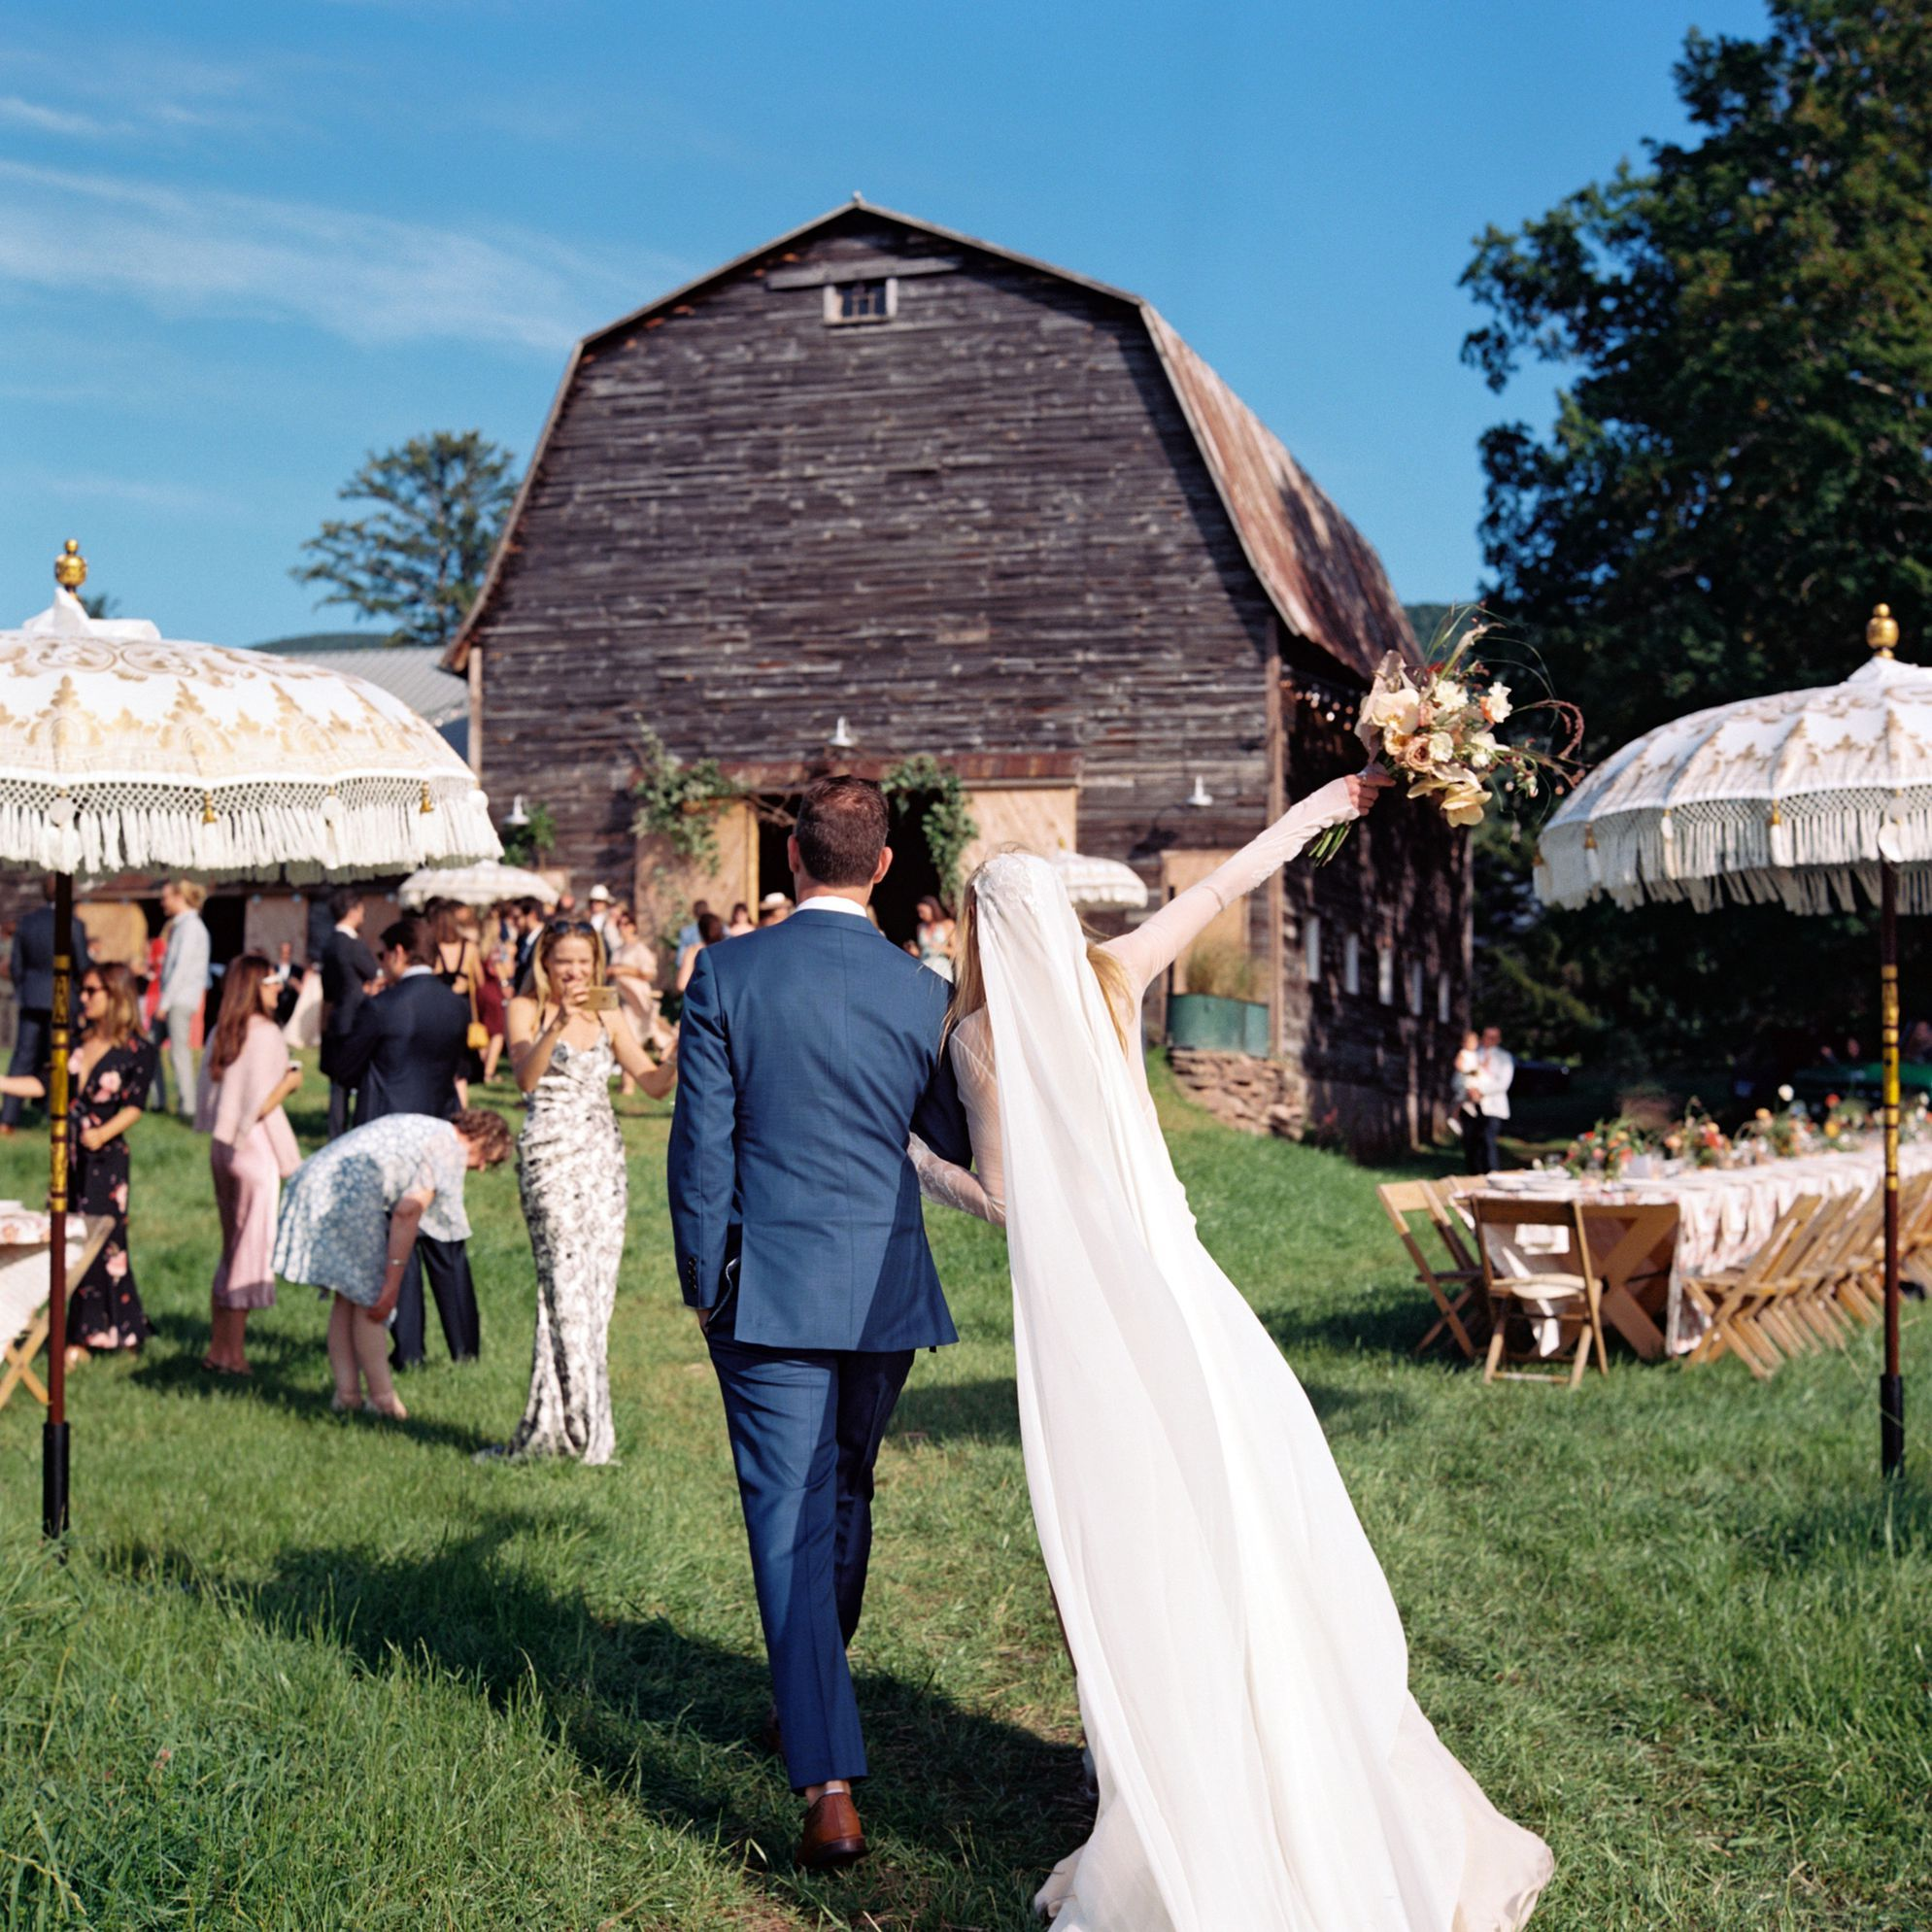 Teppiche Wedding 28 Unique Rustic Wedding Ideas How To Decorate A Country Themed